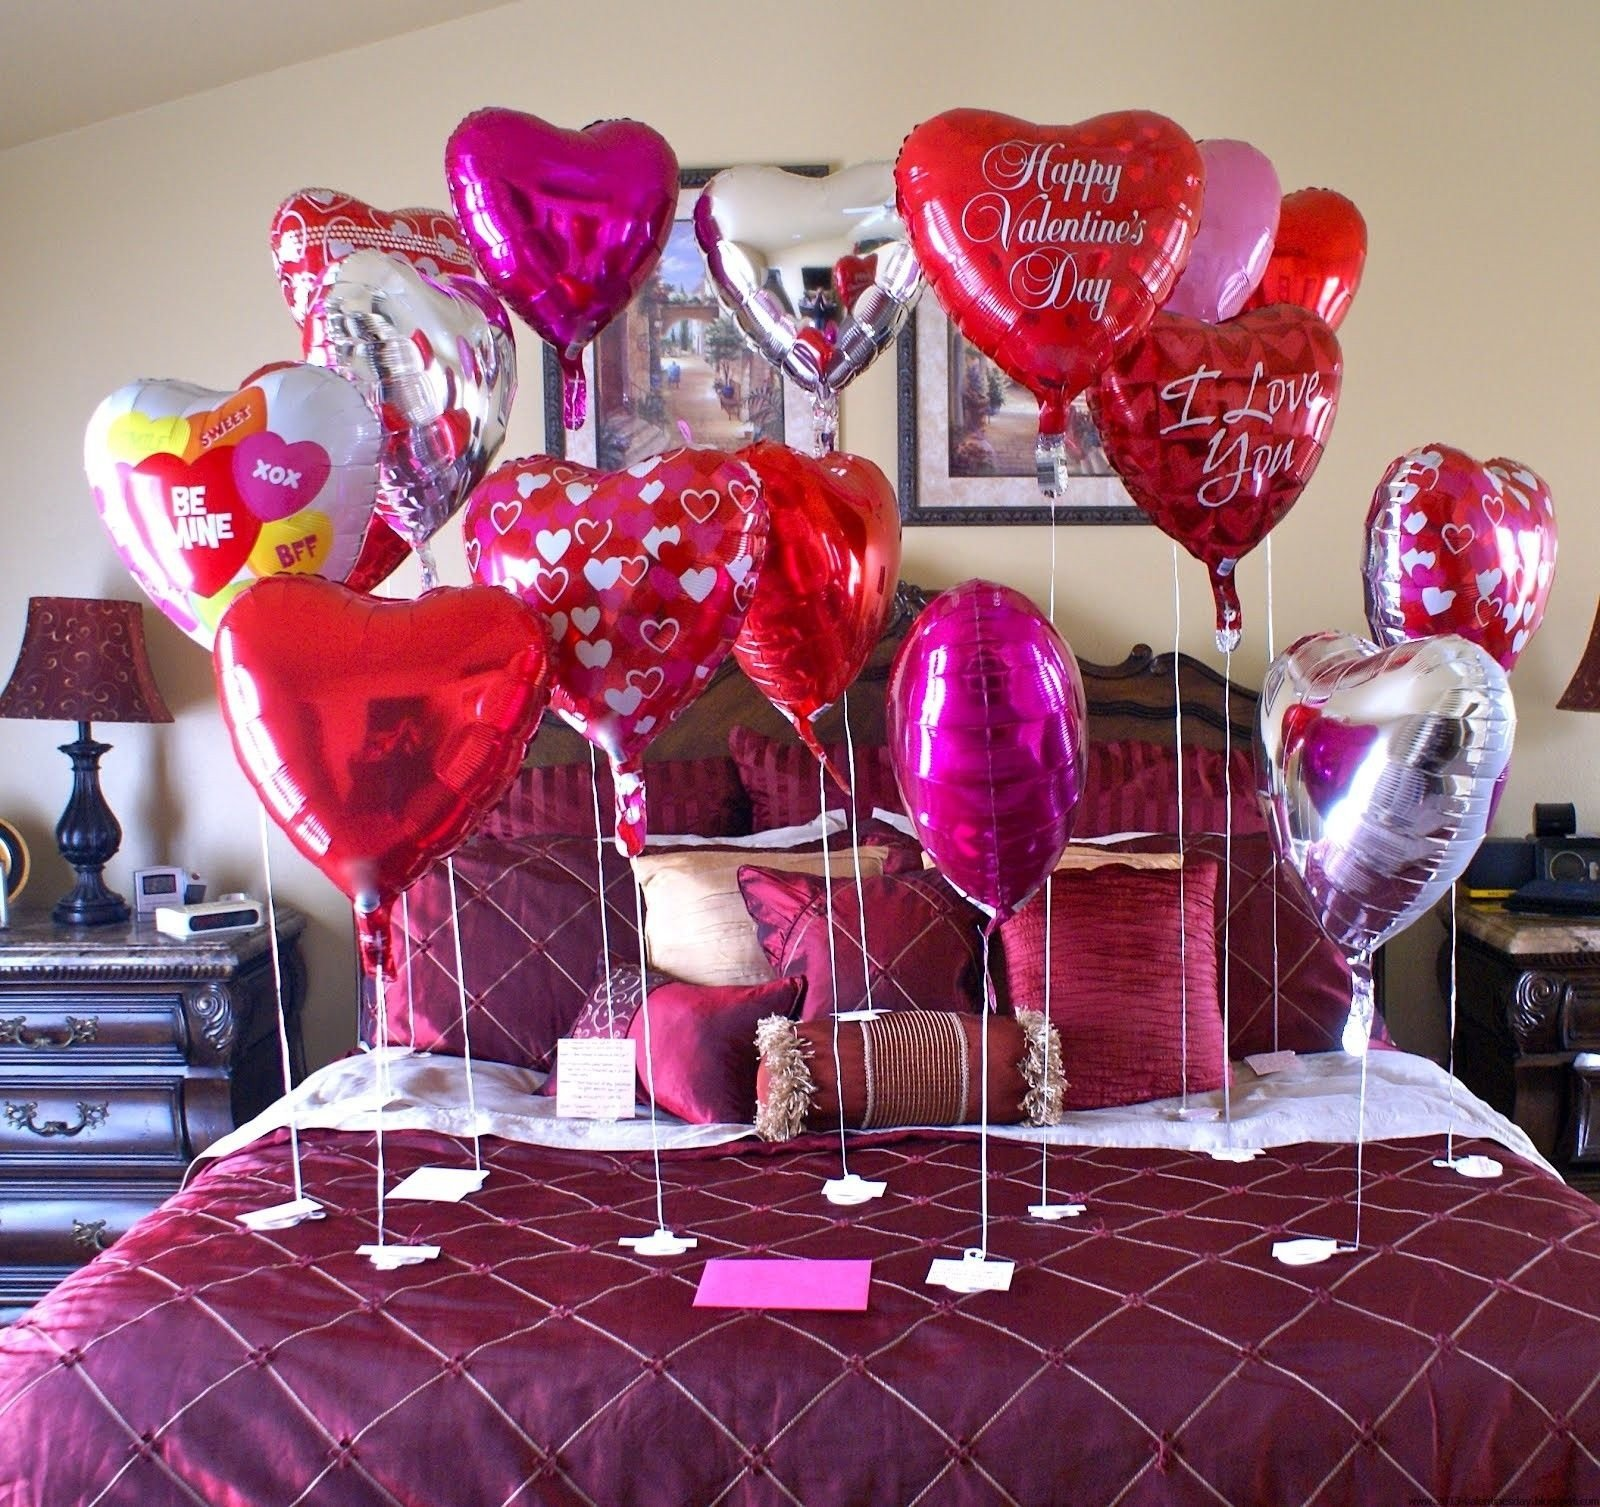 10 Nice Valentines Day Ideas For New Couples d180d0bed0bcd0b0d0bdd182d0b8d187d0b5d181d0bad0b8d0b9 d0b4d0b5d0bad0bed180 d0b4d0bed0bcd0b0 d0bdd0b0 d0b4d0b5d0bdd18c d181d0b2d18fd182